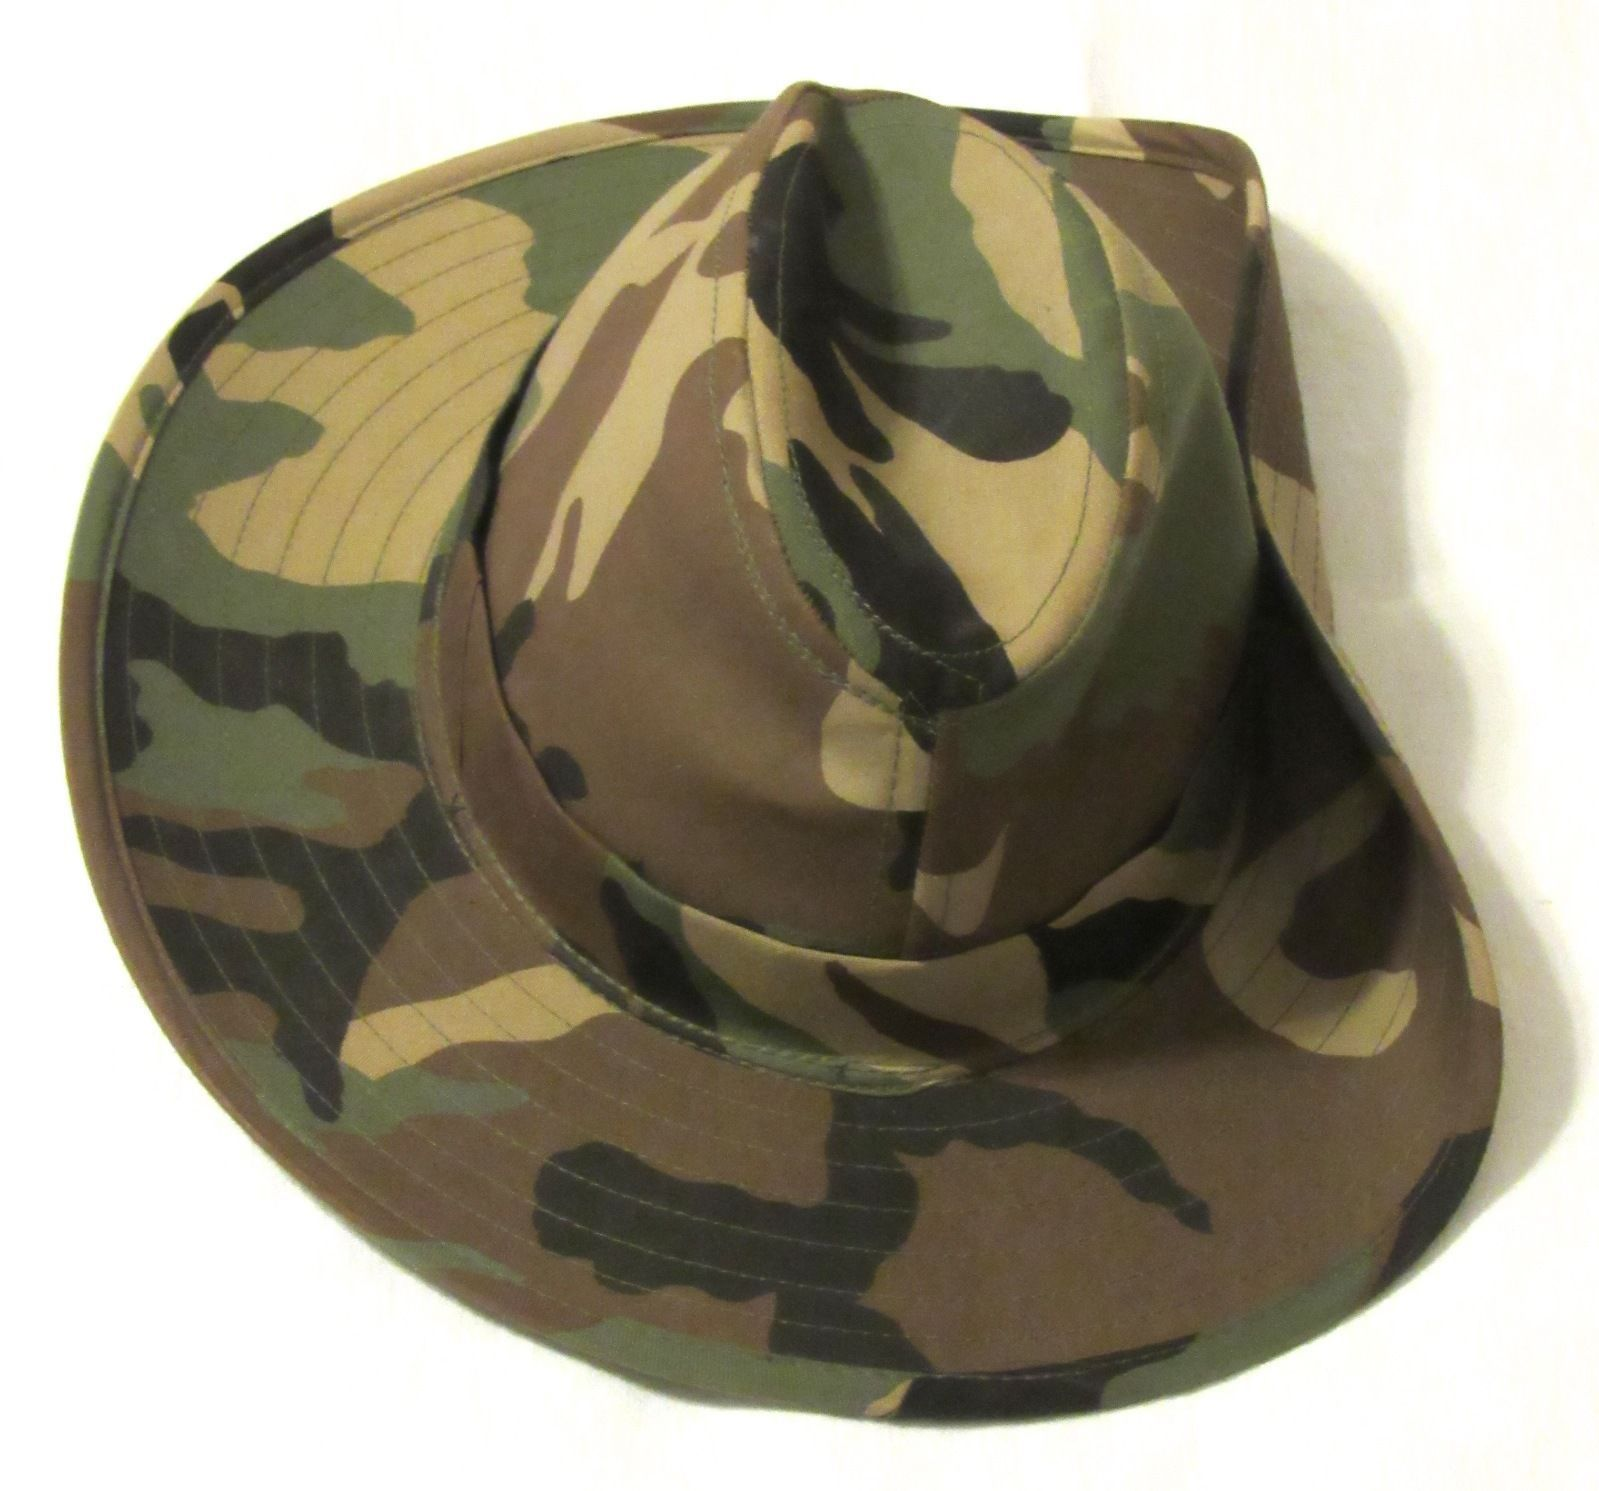 Camouflage Hunting Military Outdoor Explorer Camo Hat - No Drawstring Size: M